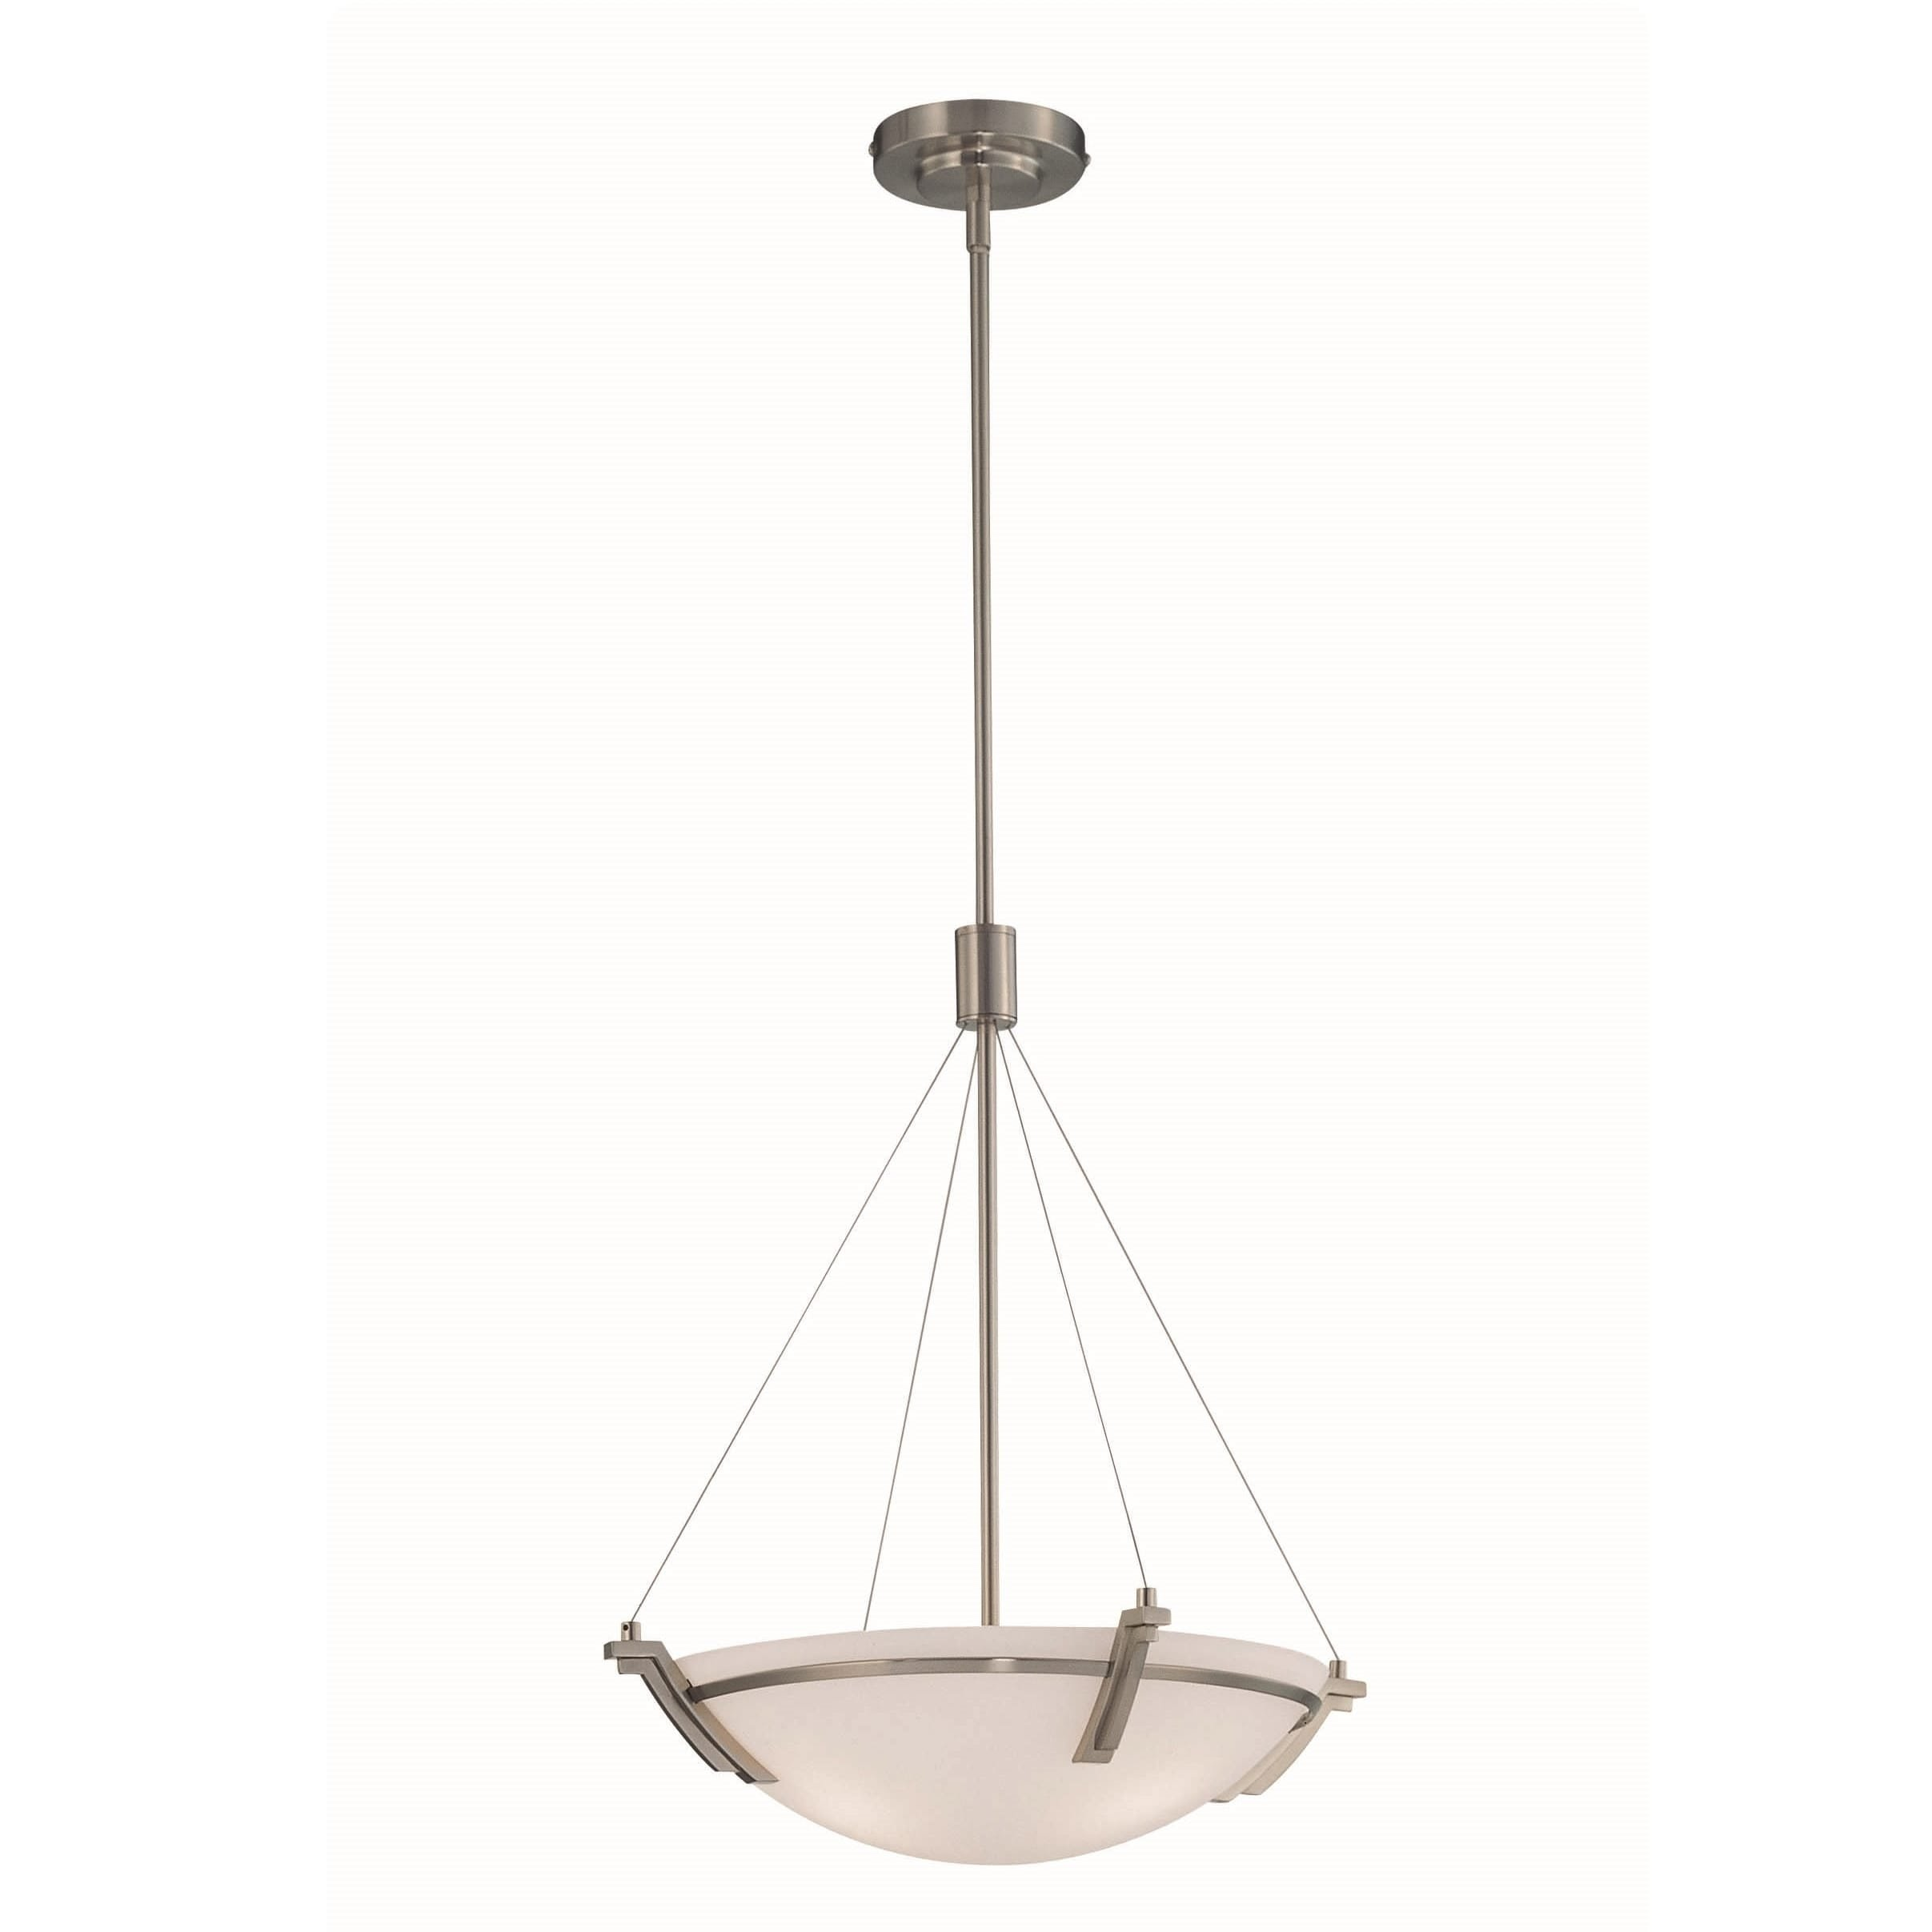 Lite Source LS-19031PS Silvia 16-Inch Ceiling Lamp, Polished Steel with Frosted Glass